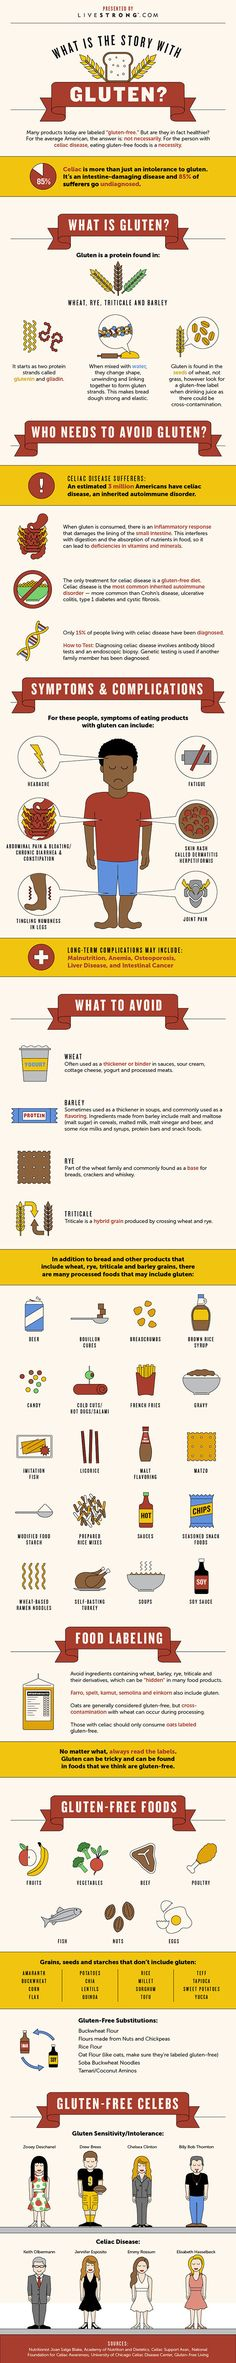 Gluten infographic | Gluten-free packaging is everywhere, but many people still don't seem to know what gluten is and why they might want to avoid it. We hope this infographic will help to solve all the confusing questions about gluten. (Gluten, by the way, is a protein found in wheat, rye, triticale and barley.)